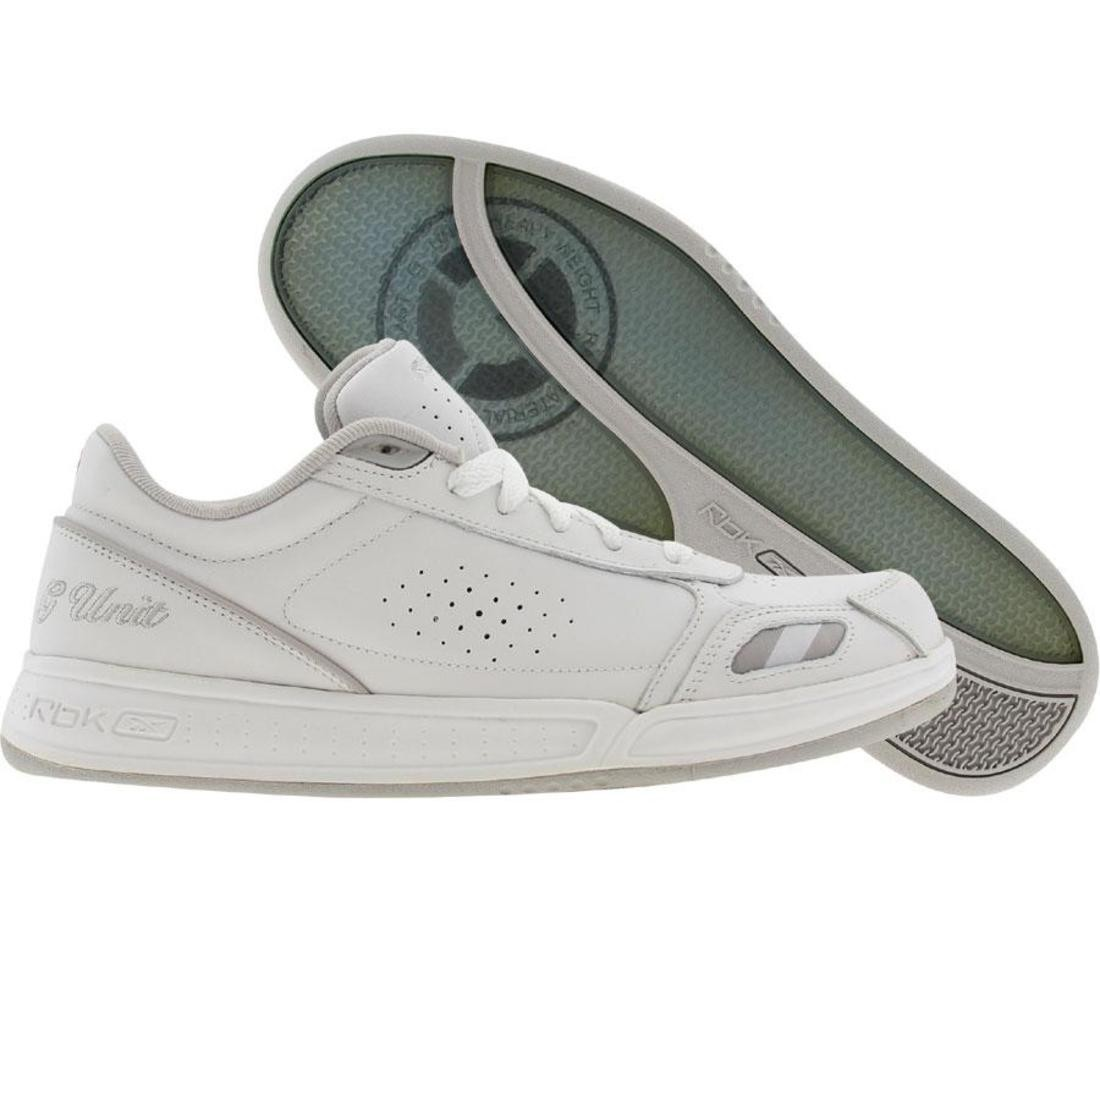 Reebok Big Kids G6 III (white / white / sh grey)